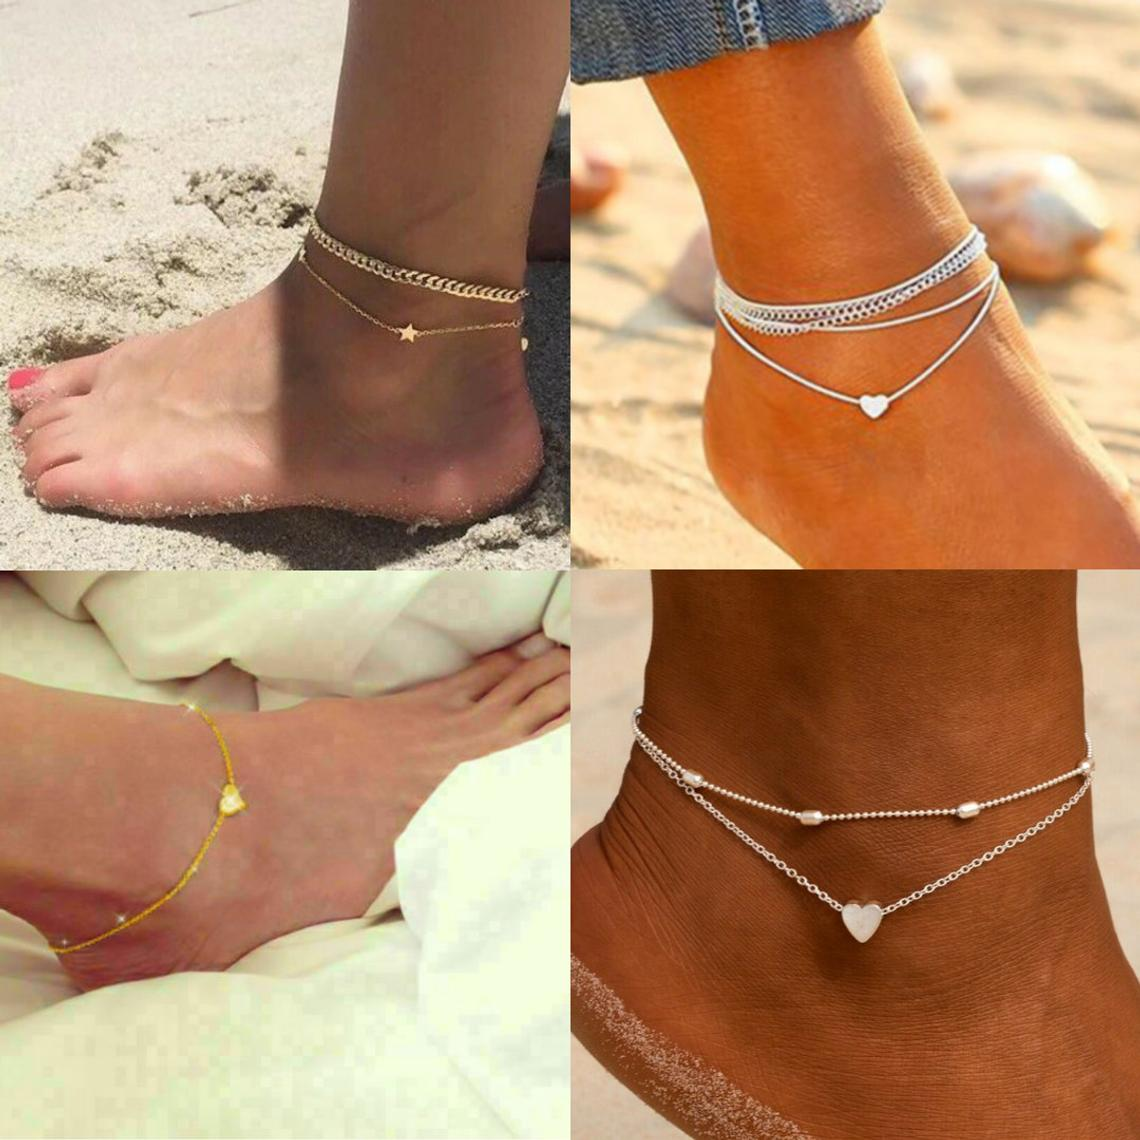 Multi layered Anklet | Boho Anklet | Dainty Anklet | Stacking Anklet | Ankle Bracelets | UK Anklets |Gifts for her |BFF Gift |Gift for girls